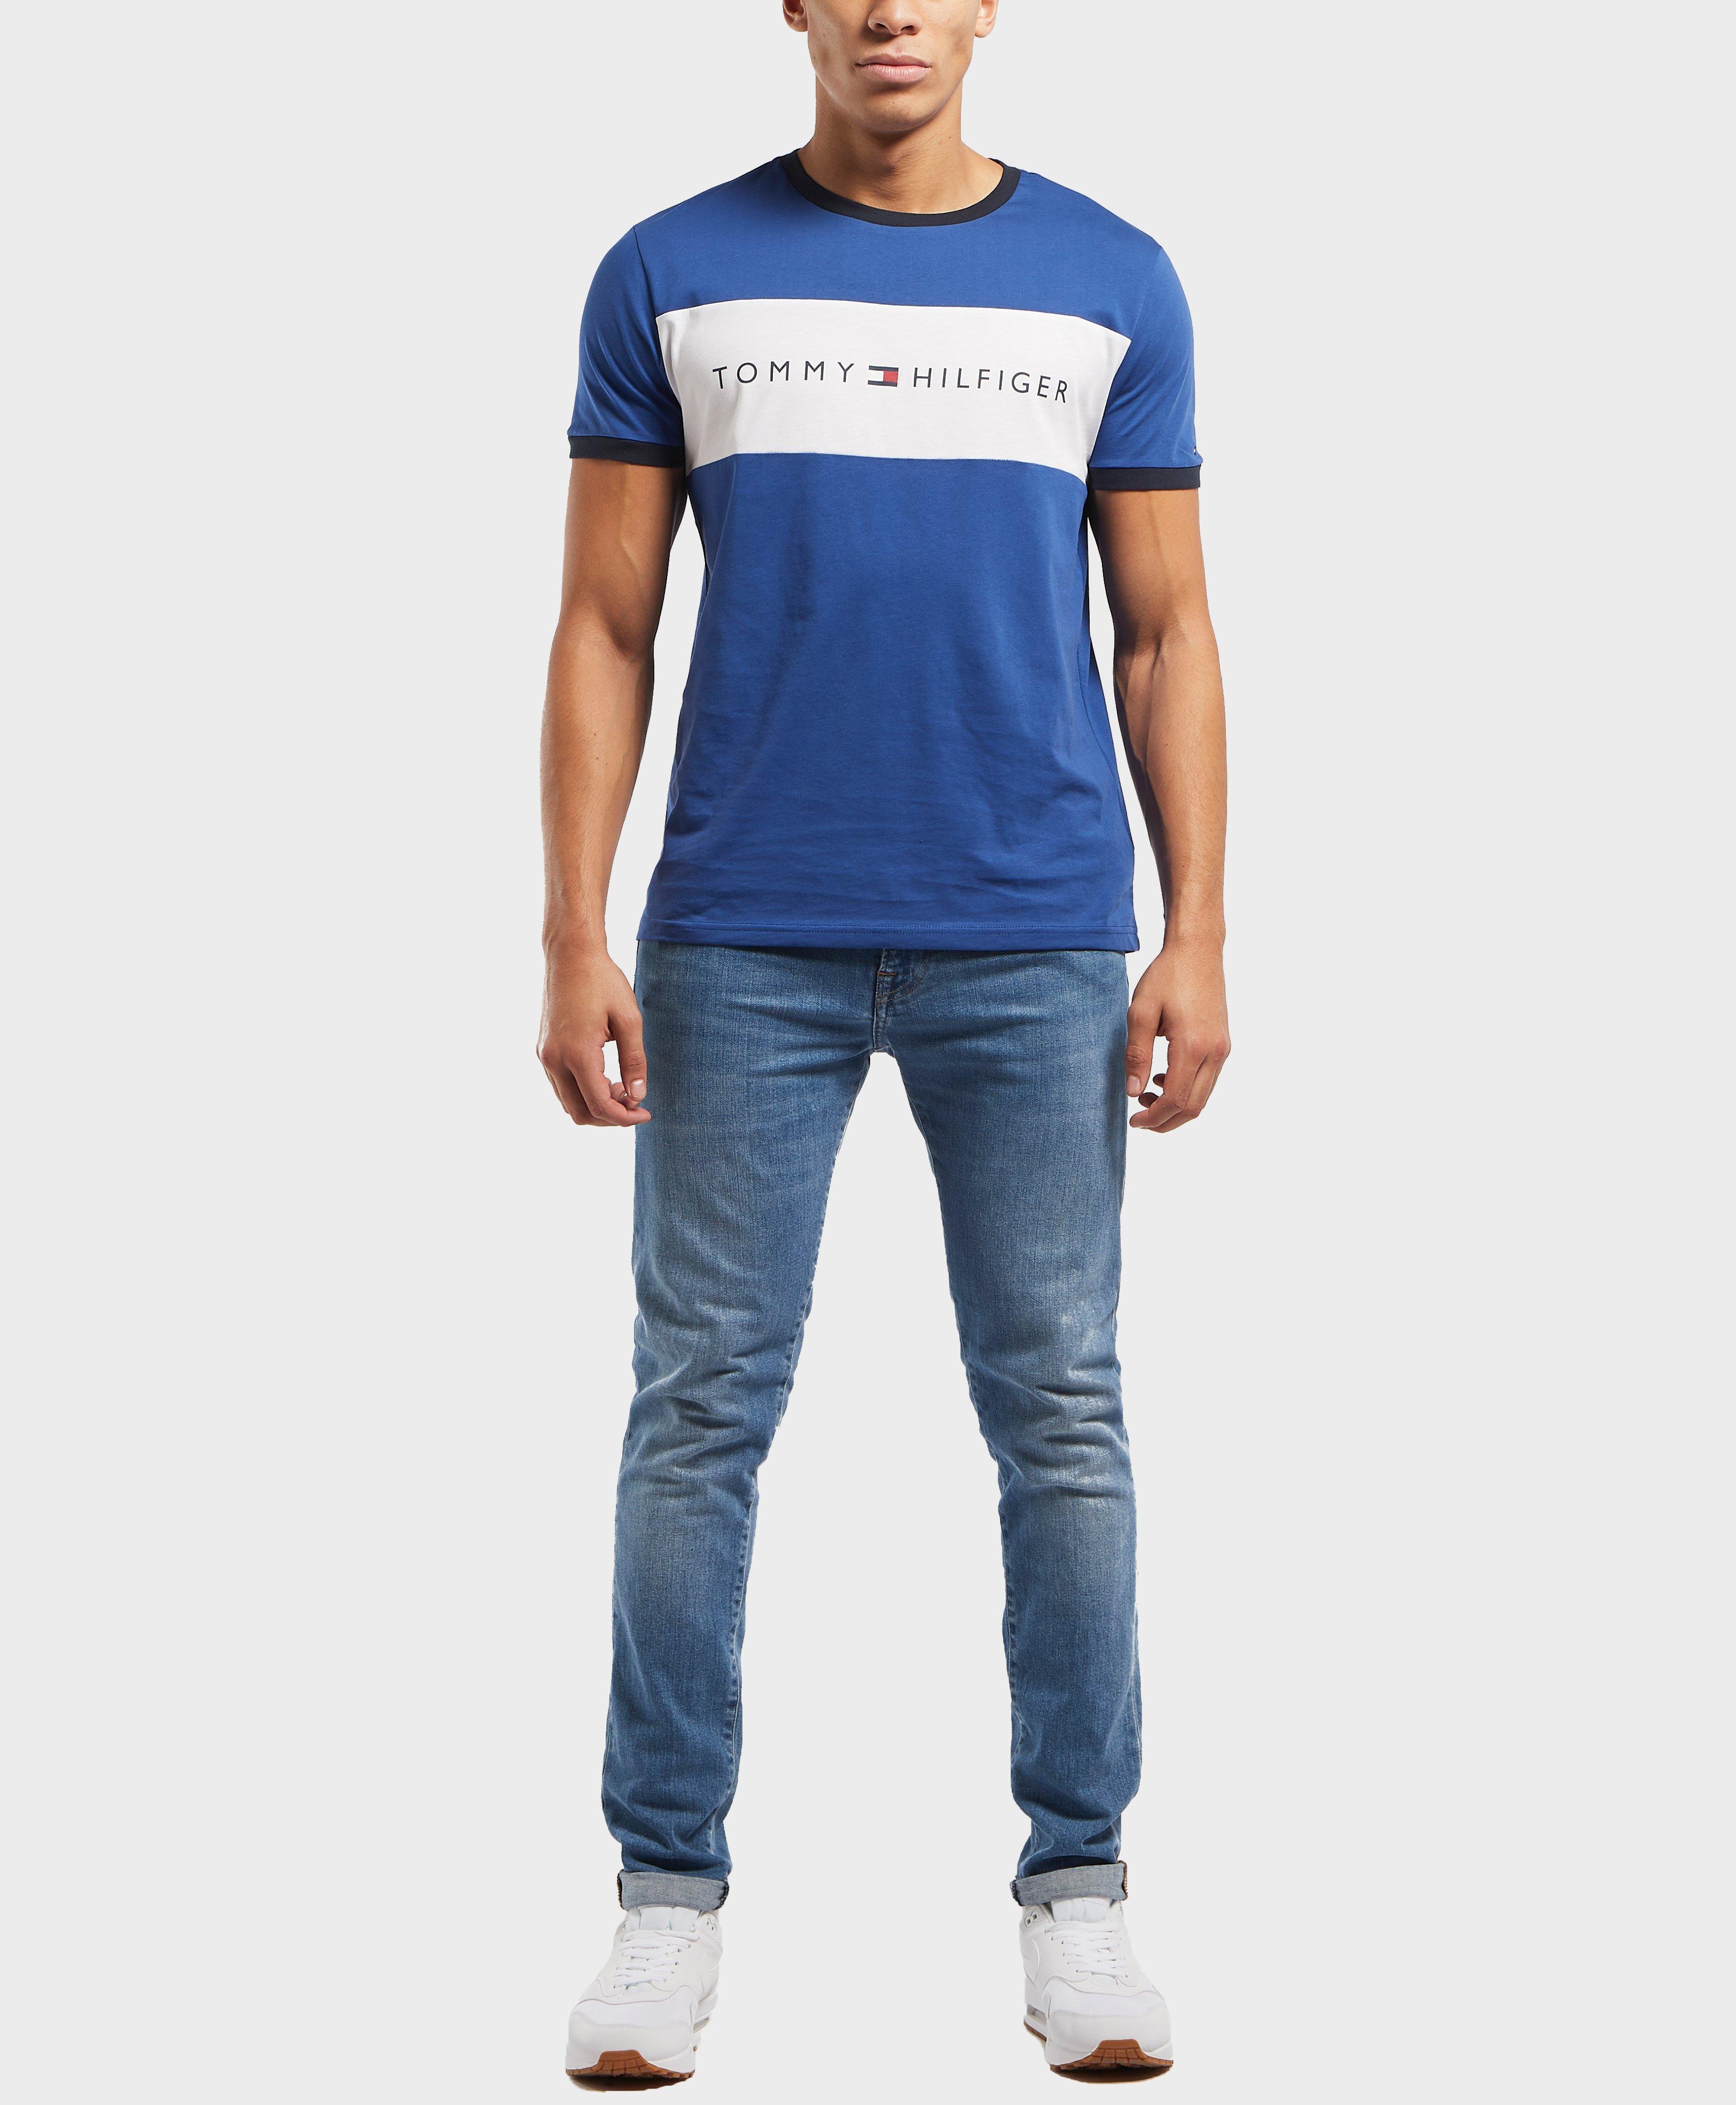 870339644 Tommy Hilfiger Cut And Sew Logo Short Sleeve T-shirt in Blue for Men ...